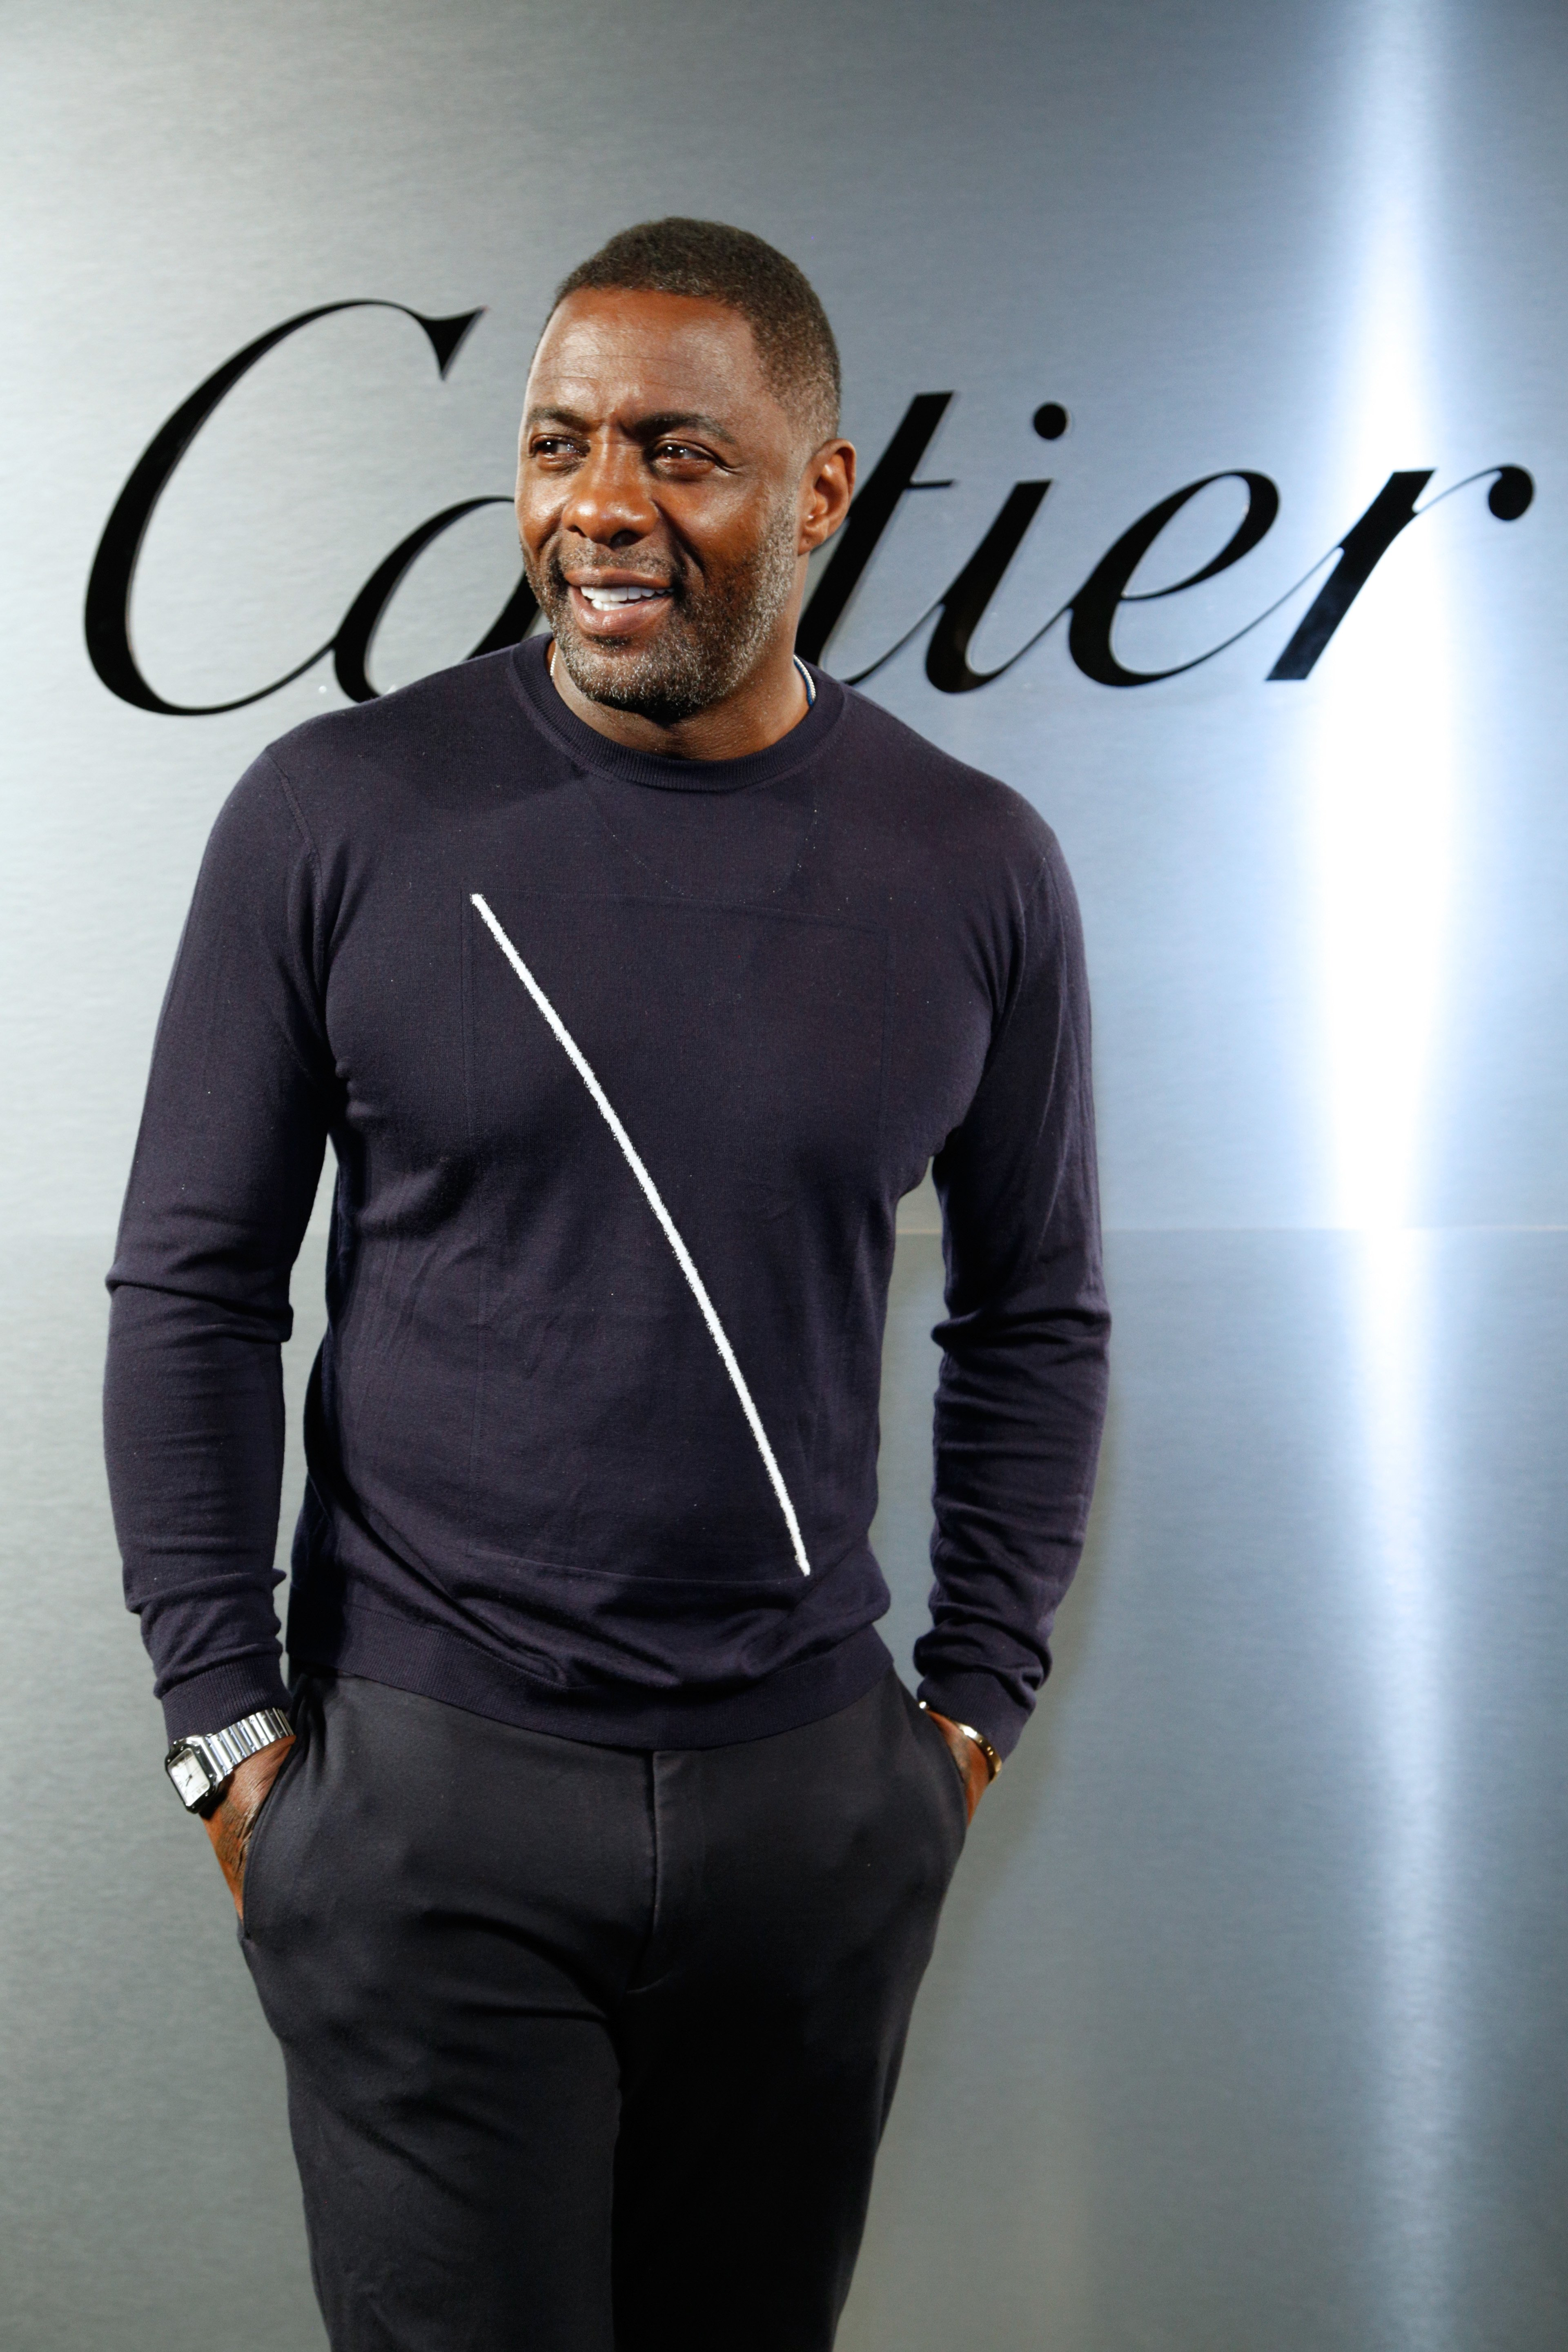 Idris Elba at Cartier celebration of the launch of Santos de Cartier Watch on Apr. 5, 2018 in San Francisco. |Photo: Getty Images